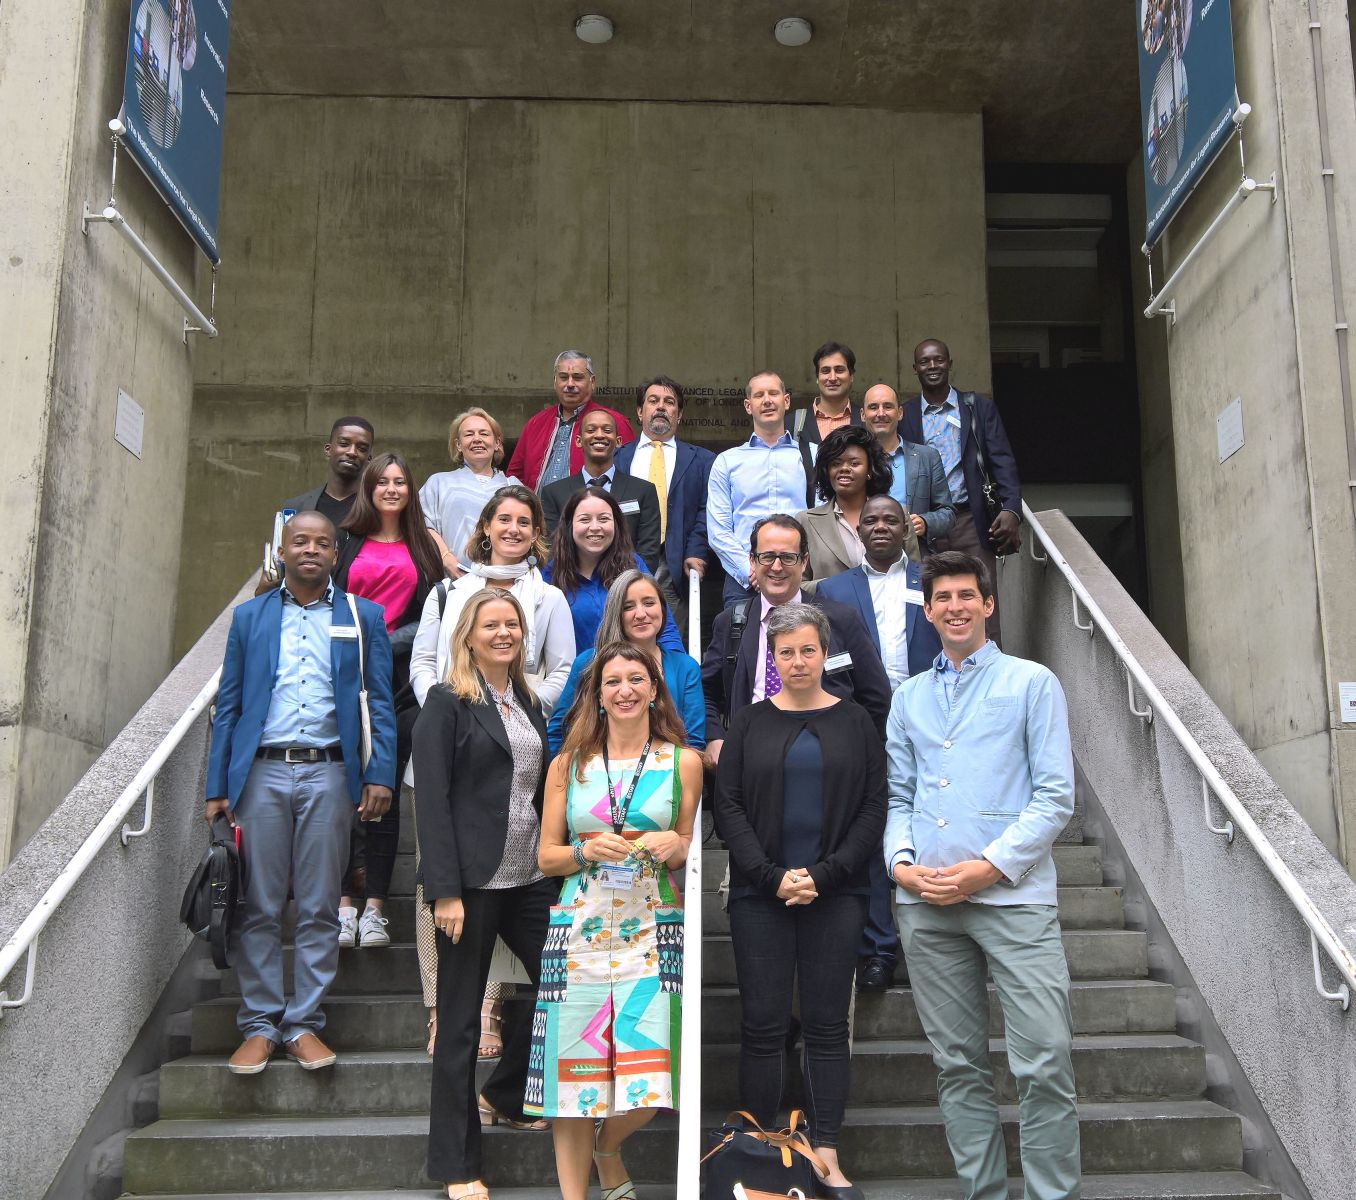 Picture of attendees, speakers and organisers of the 4th Urban Law Day on the steps outside the Institute of Advanced Legal Studies